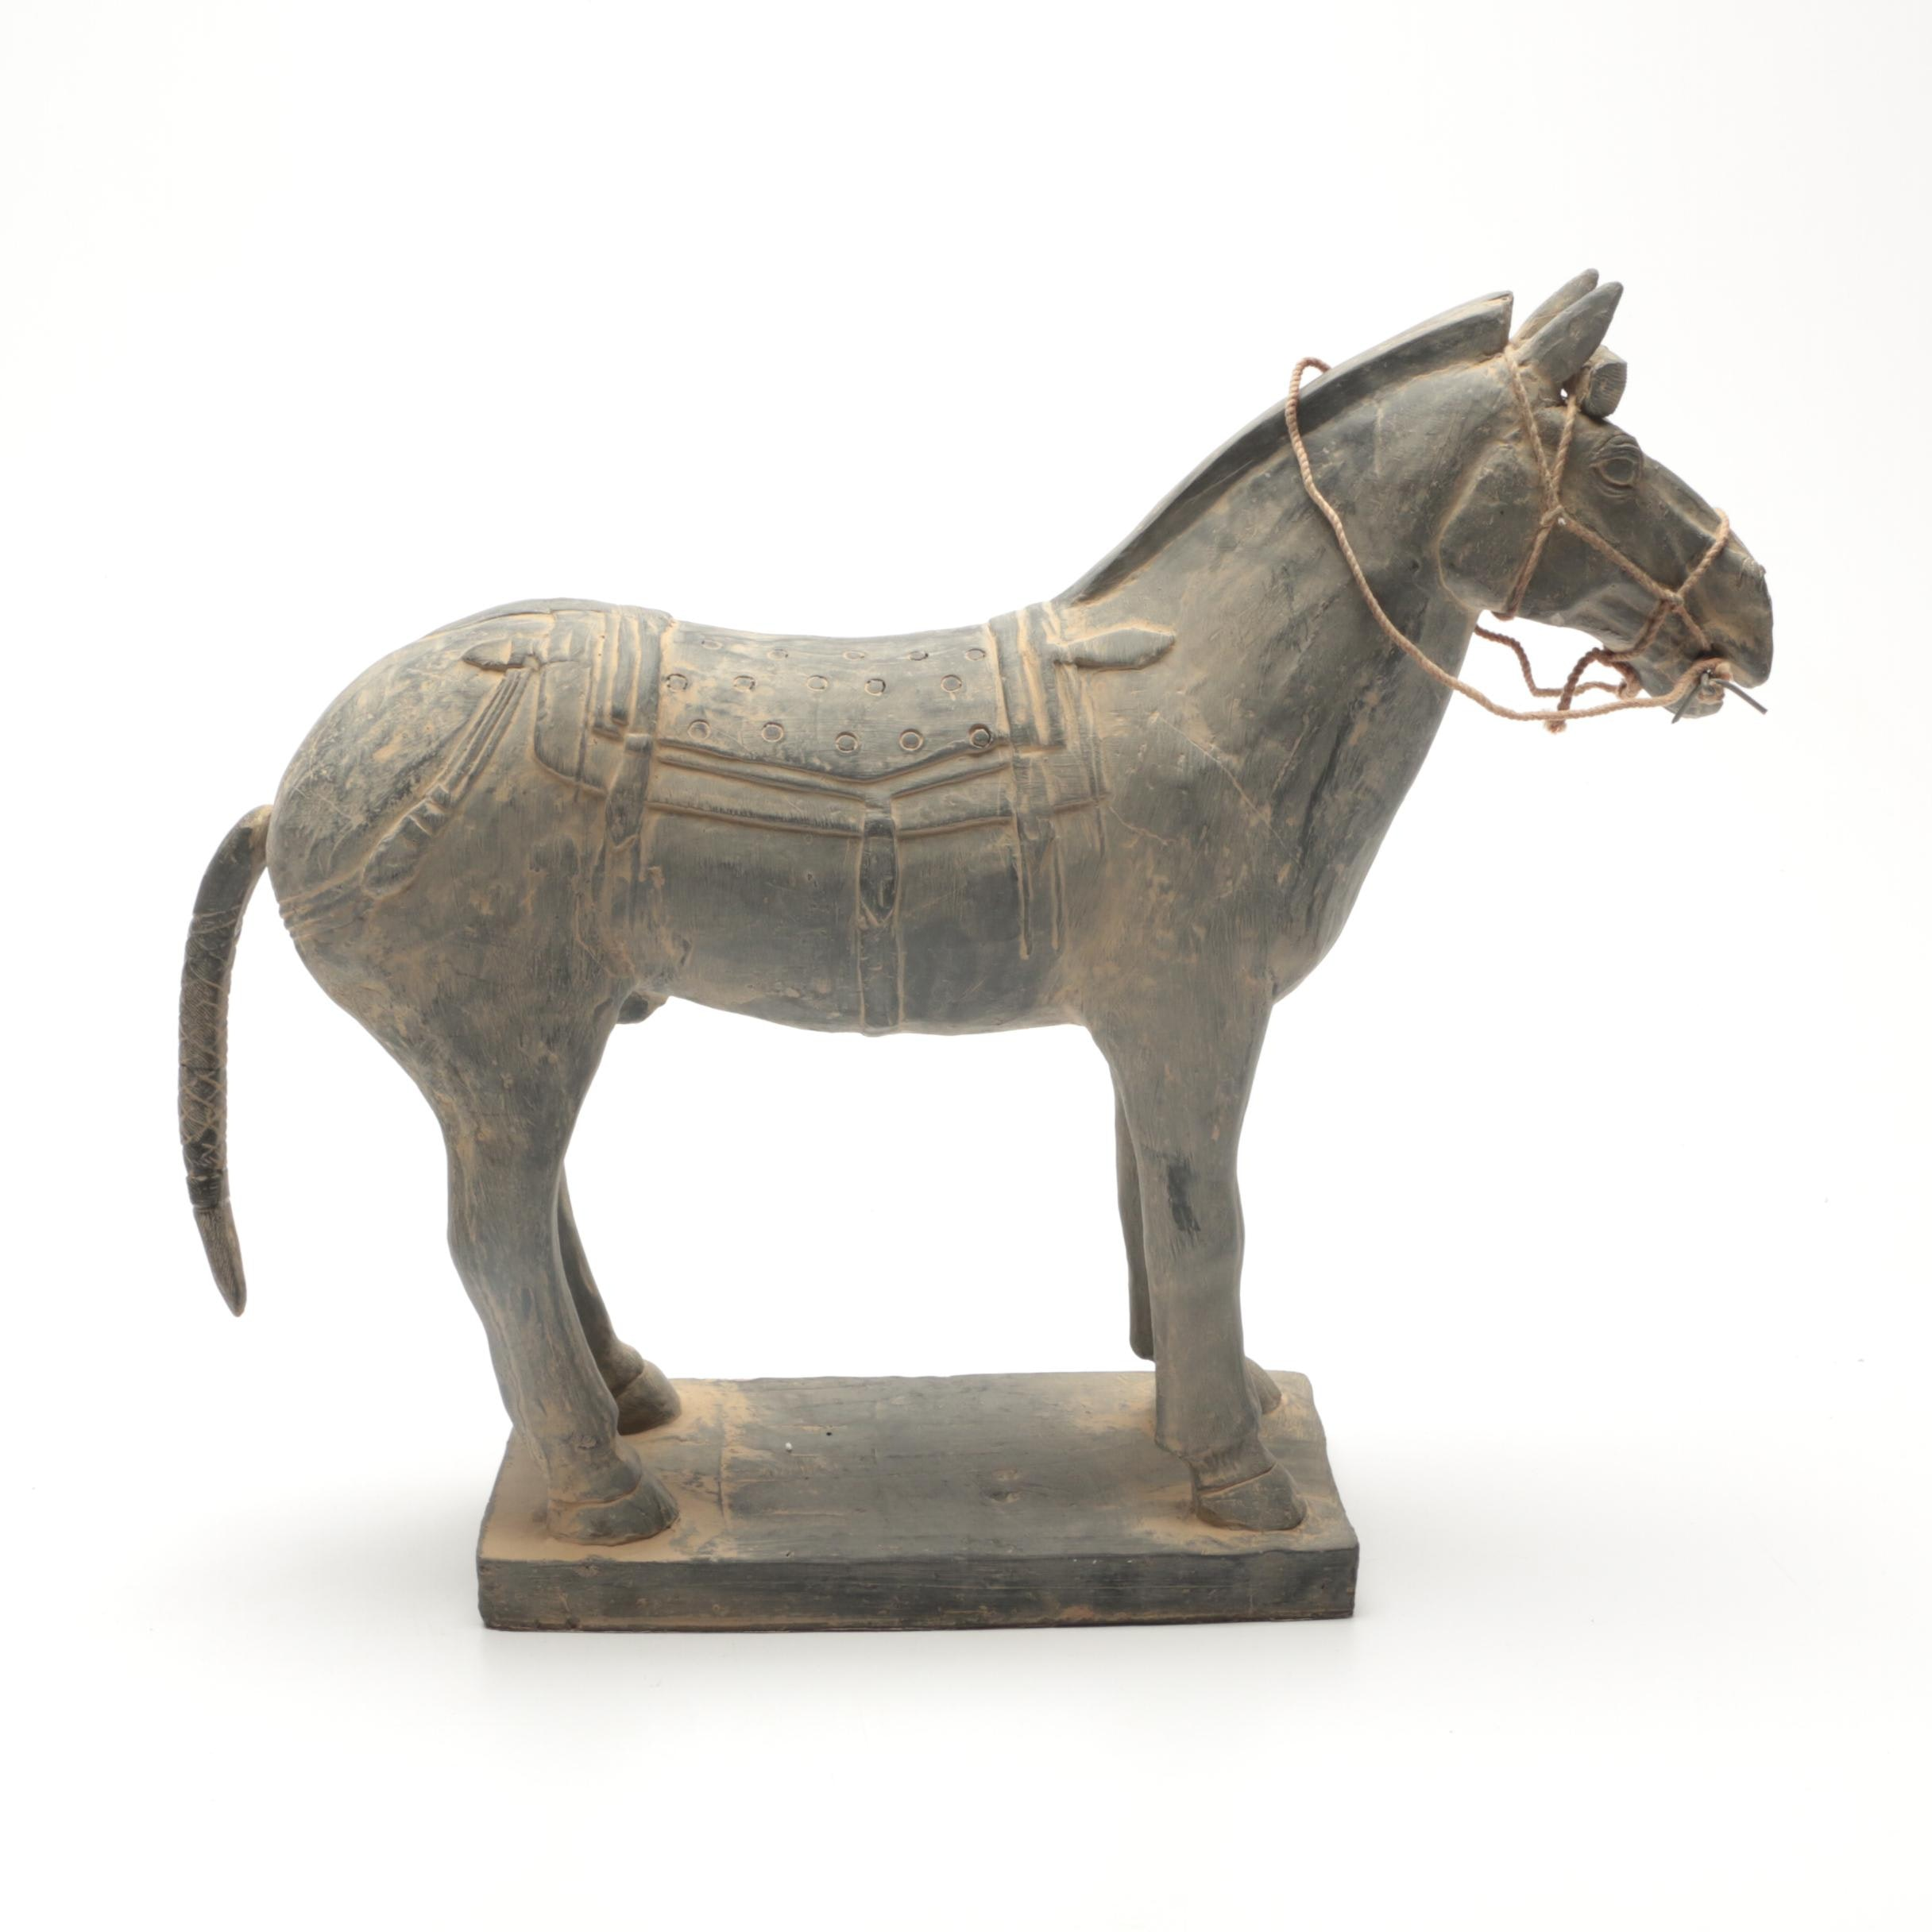 Chinese Terra Cotta Army Horse Replica Sculpture